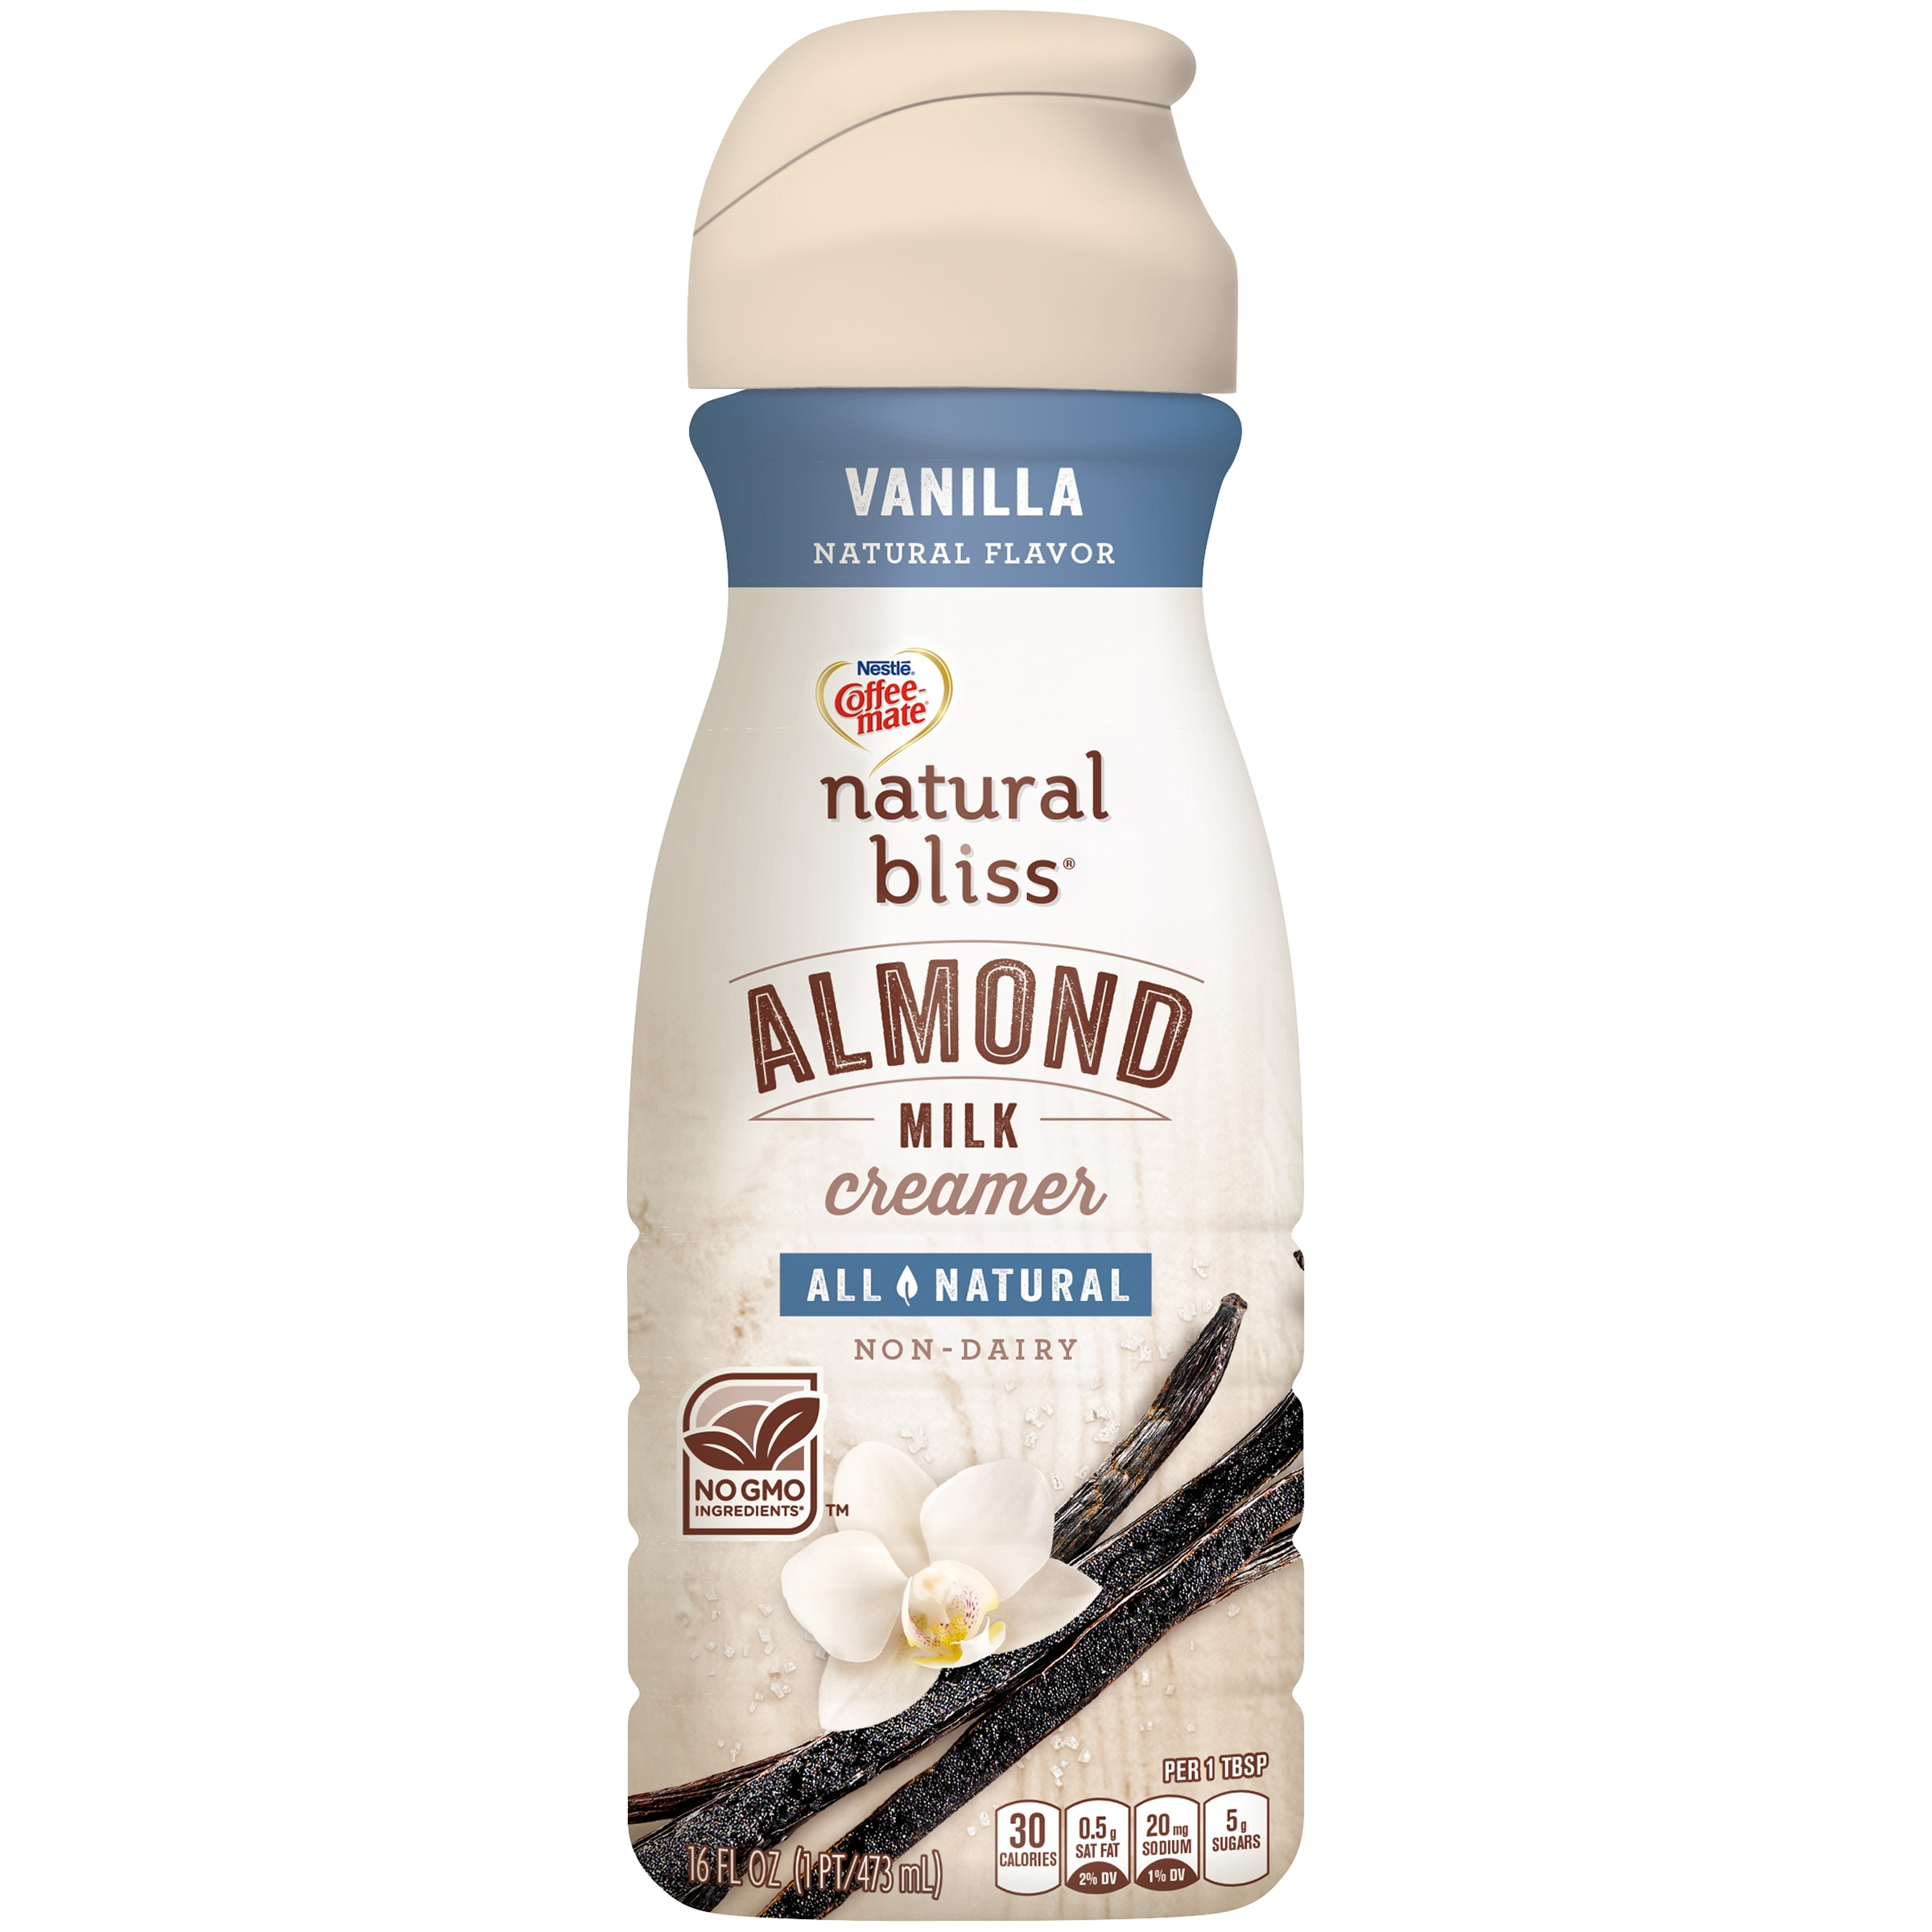 COFFEE MATE NATURAL BLISS Almond Milk Vanilla All-Natural Liquid Coffee  Creamer, 16 Fl  Oz  Bottle | Non-Dairy Creamer